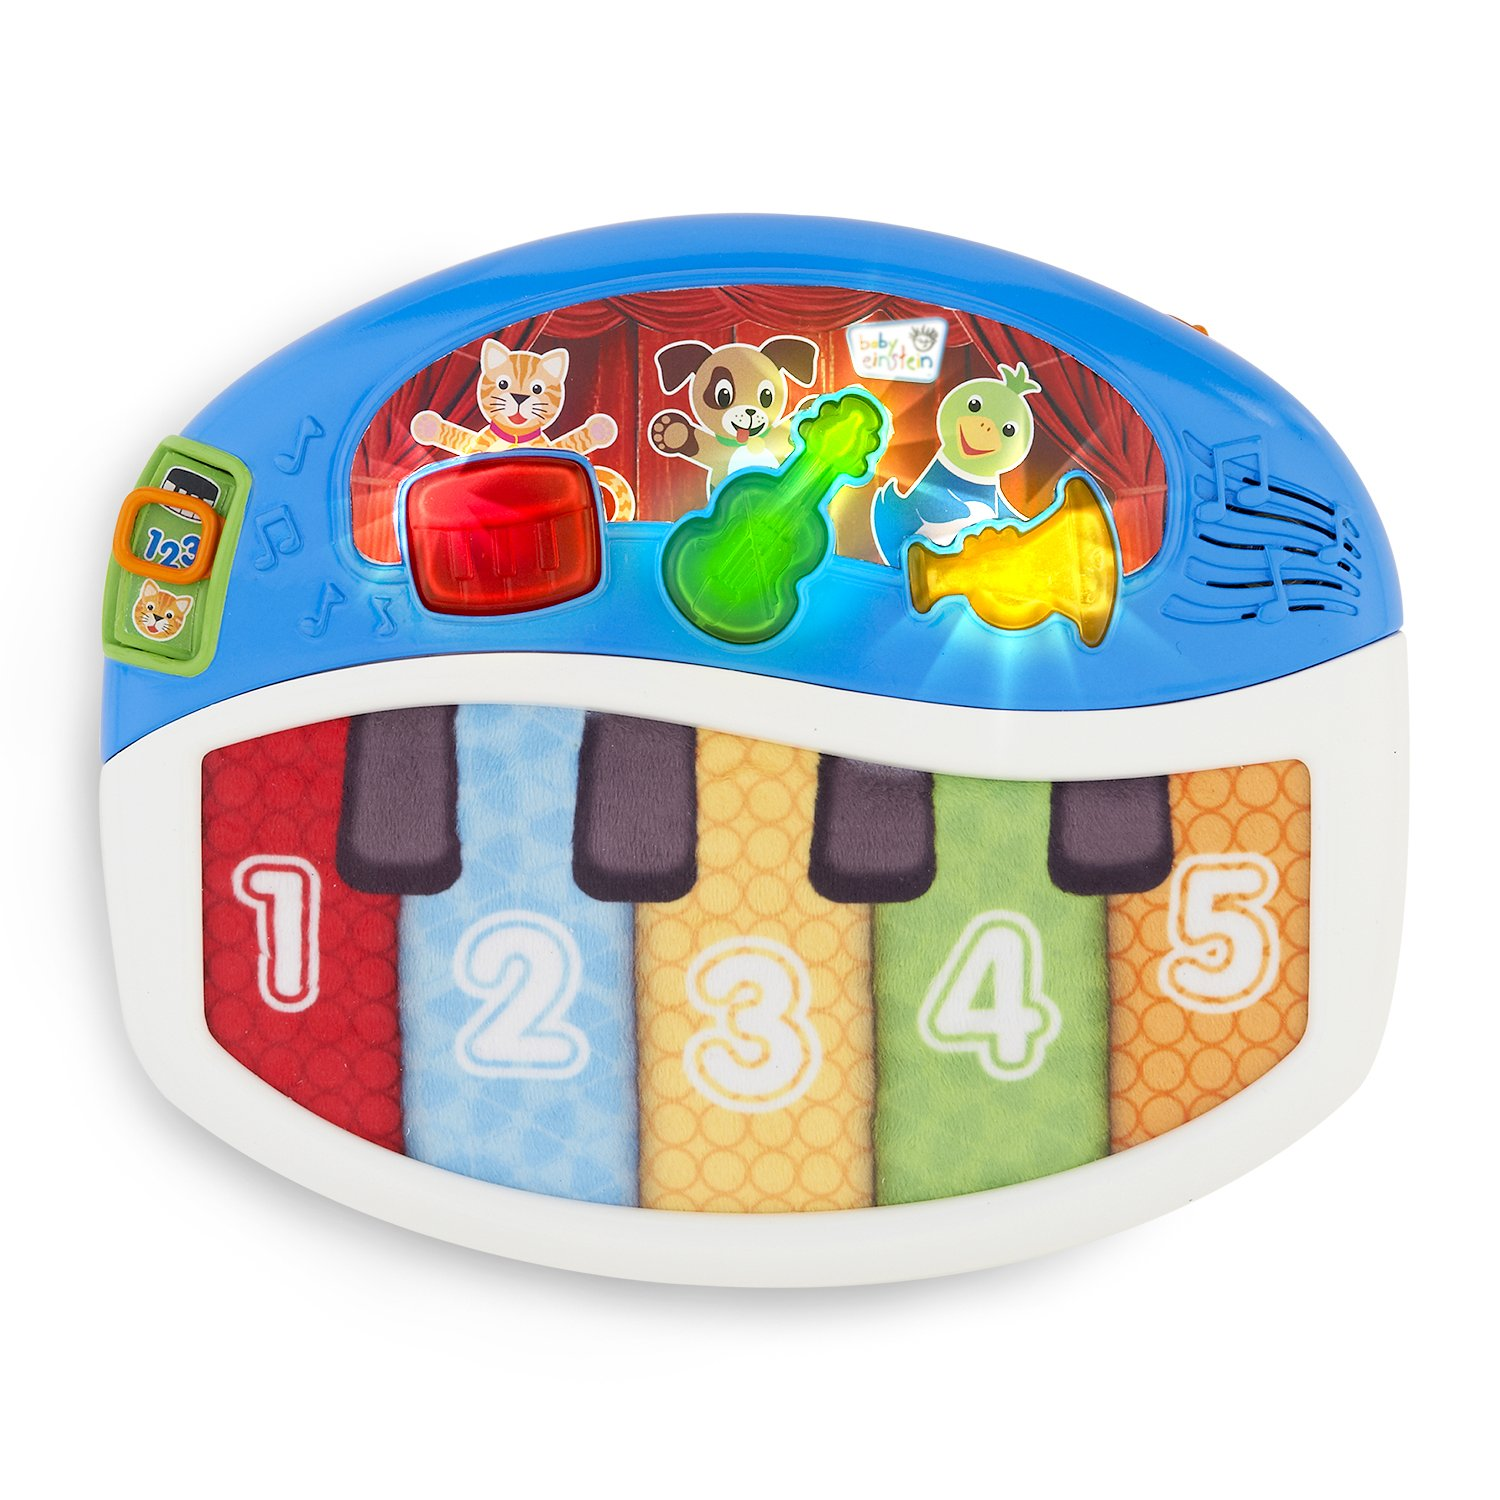 Discover & Play Piano Musical Toy